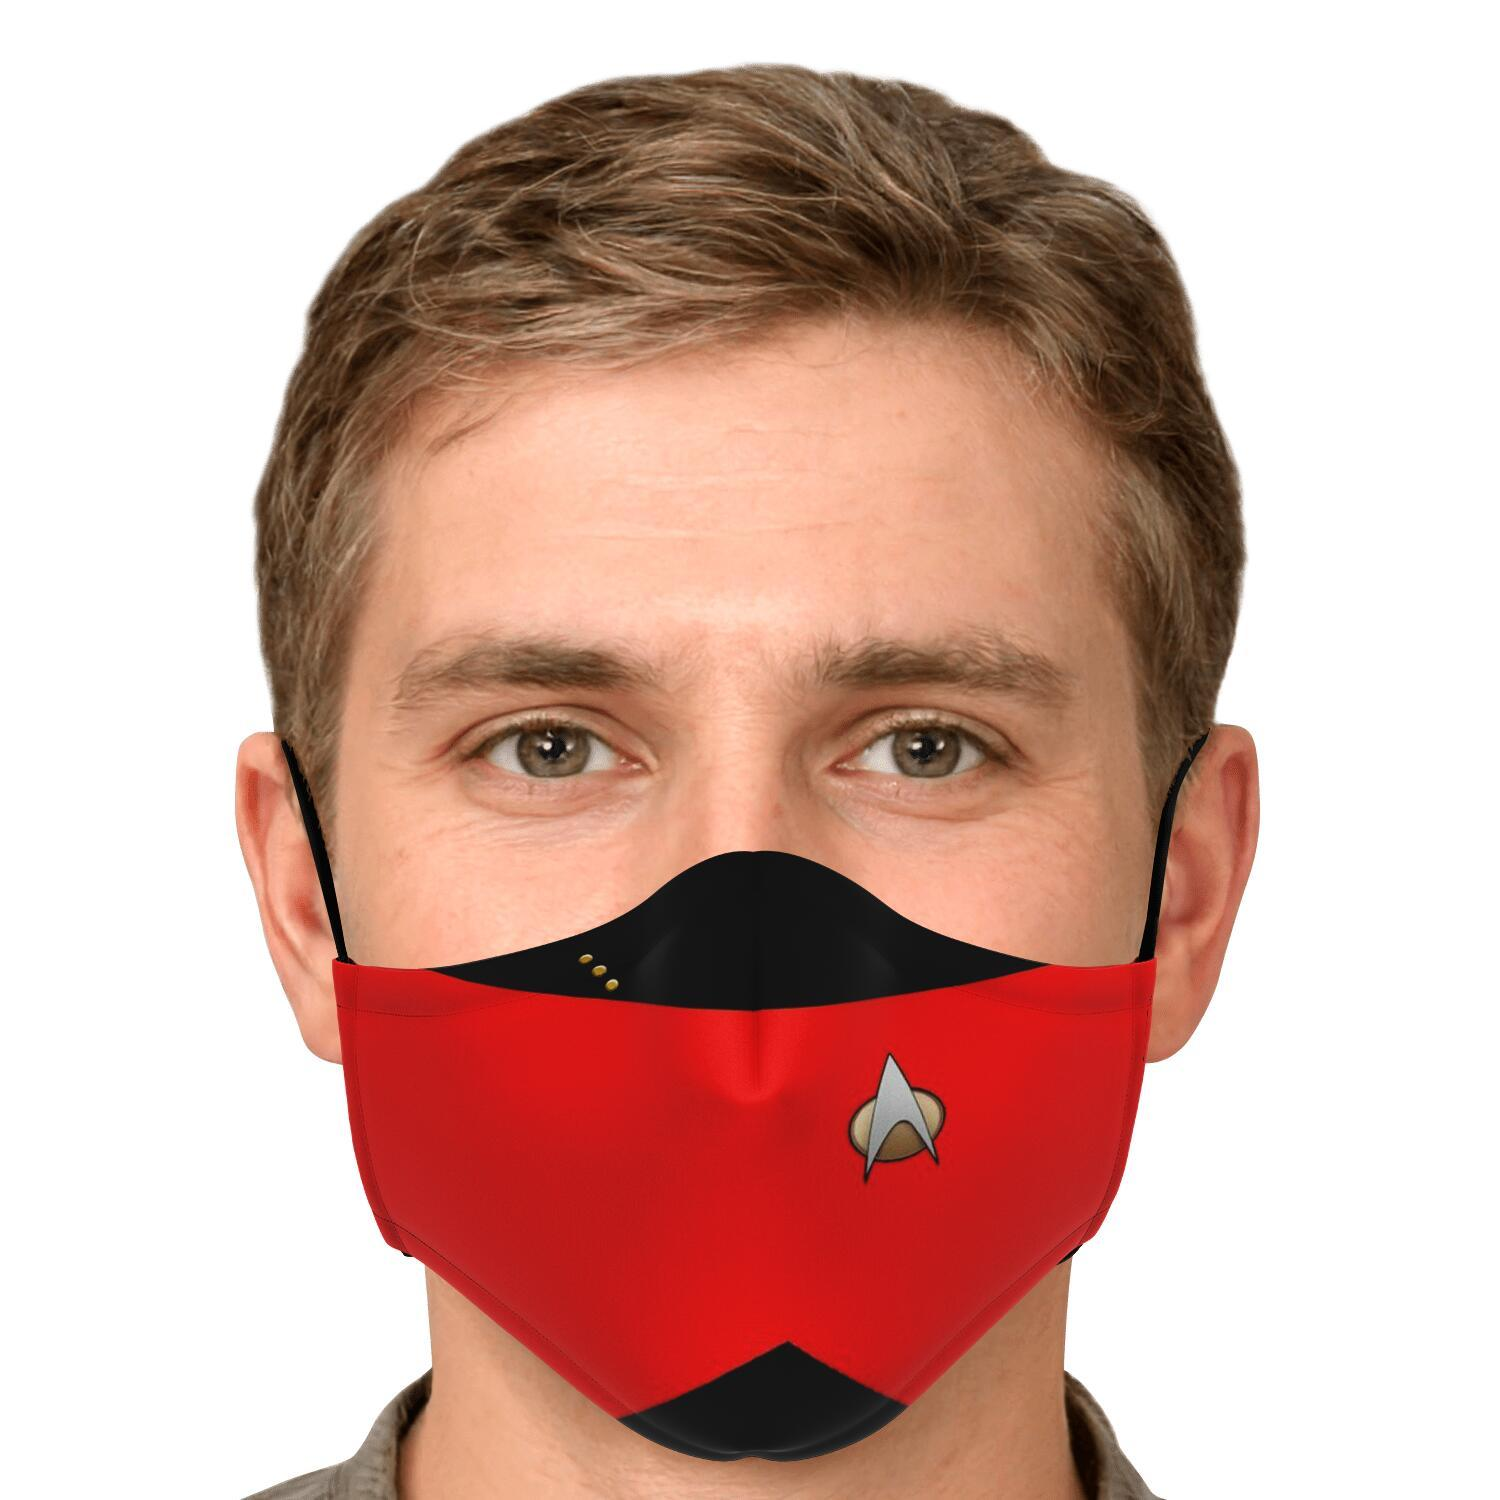 Star Trek Red Shirt Face Mask 4